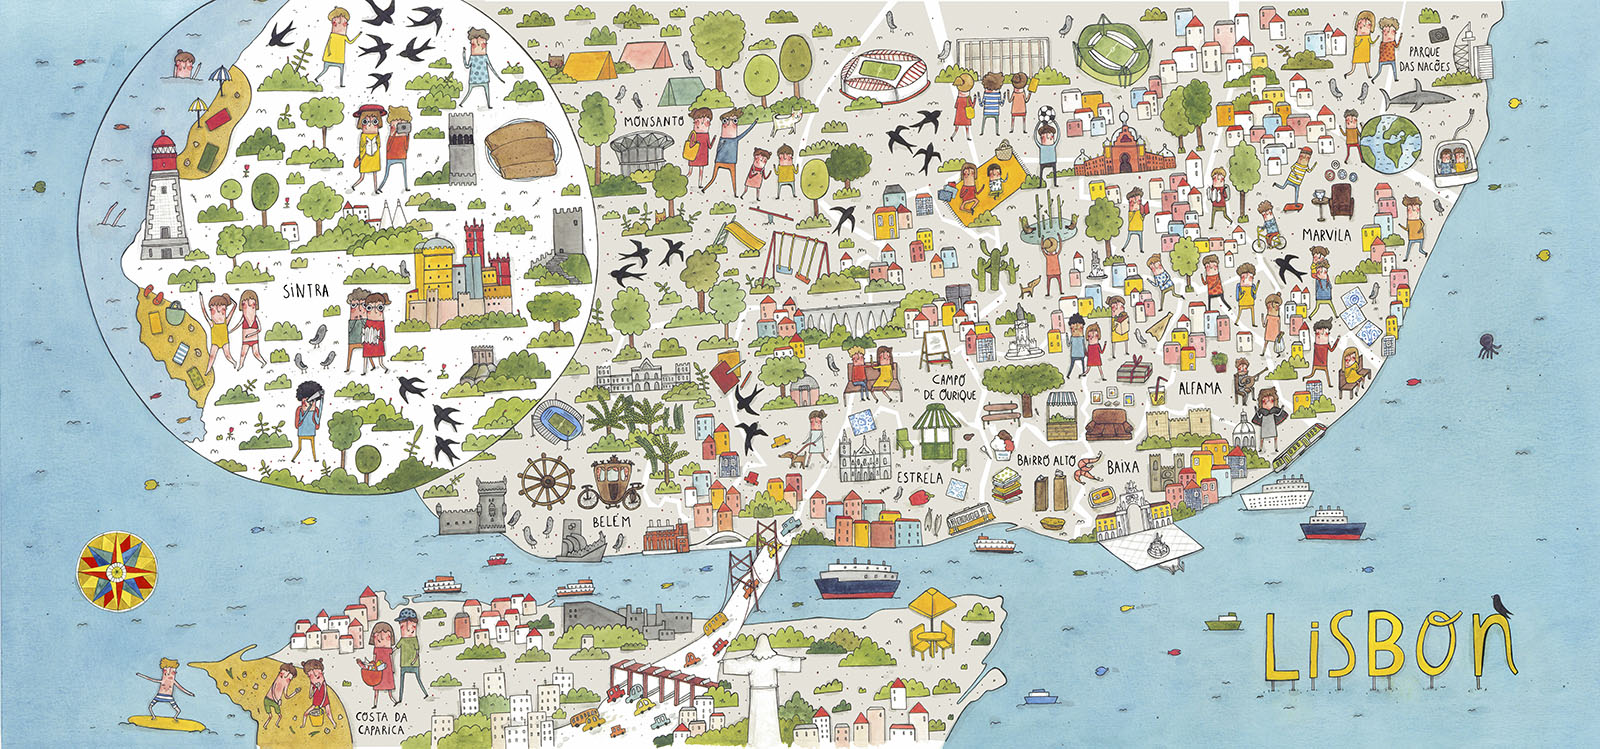 The map of Lisbon